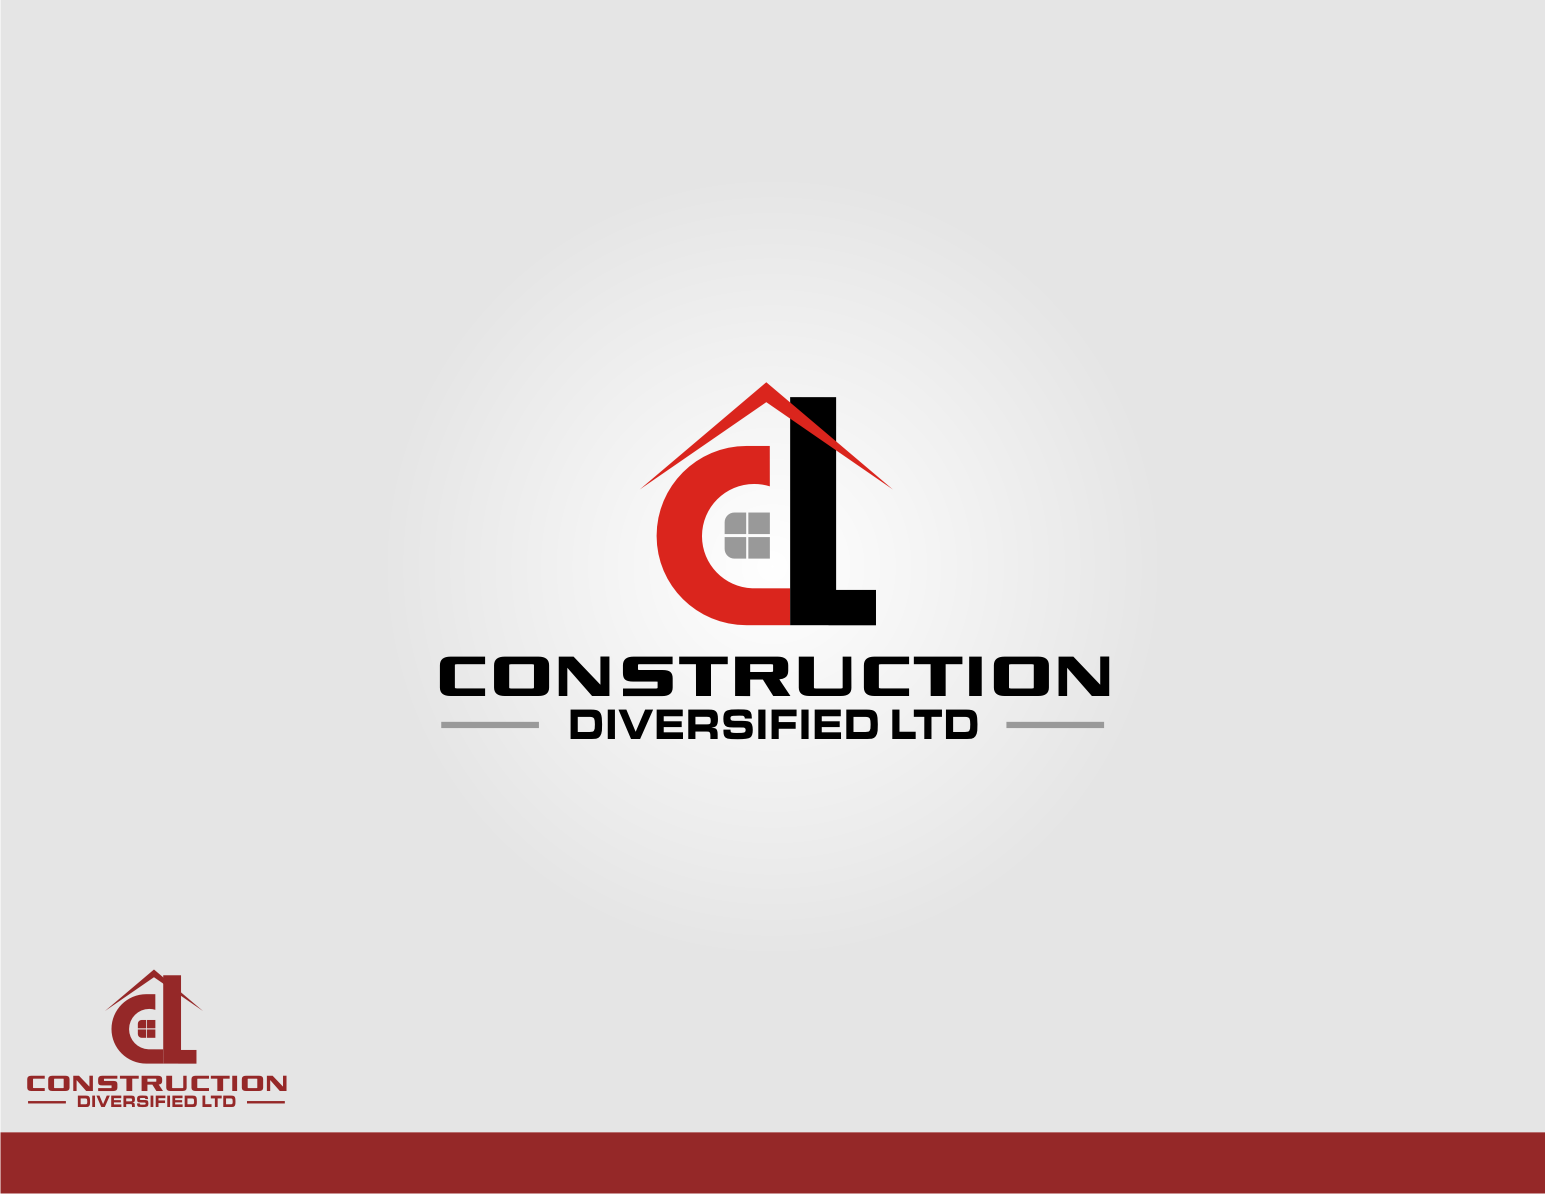 Company Logo Design South Africa  Business Logo Design